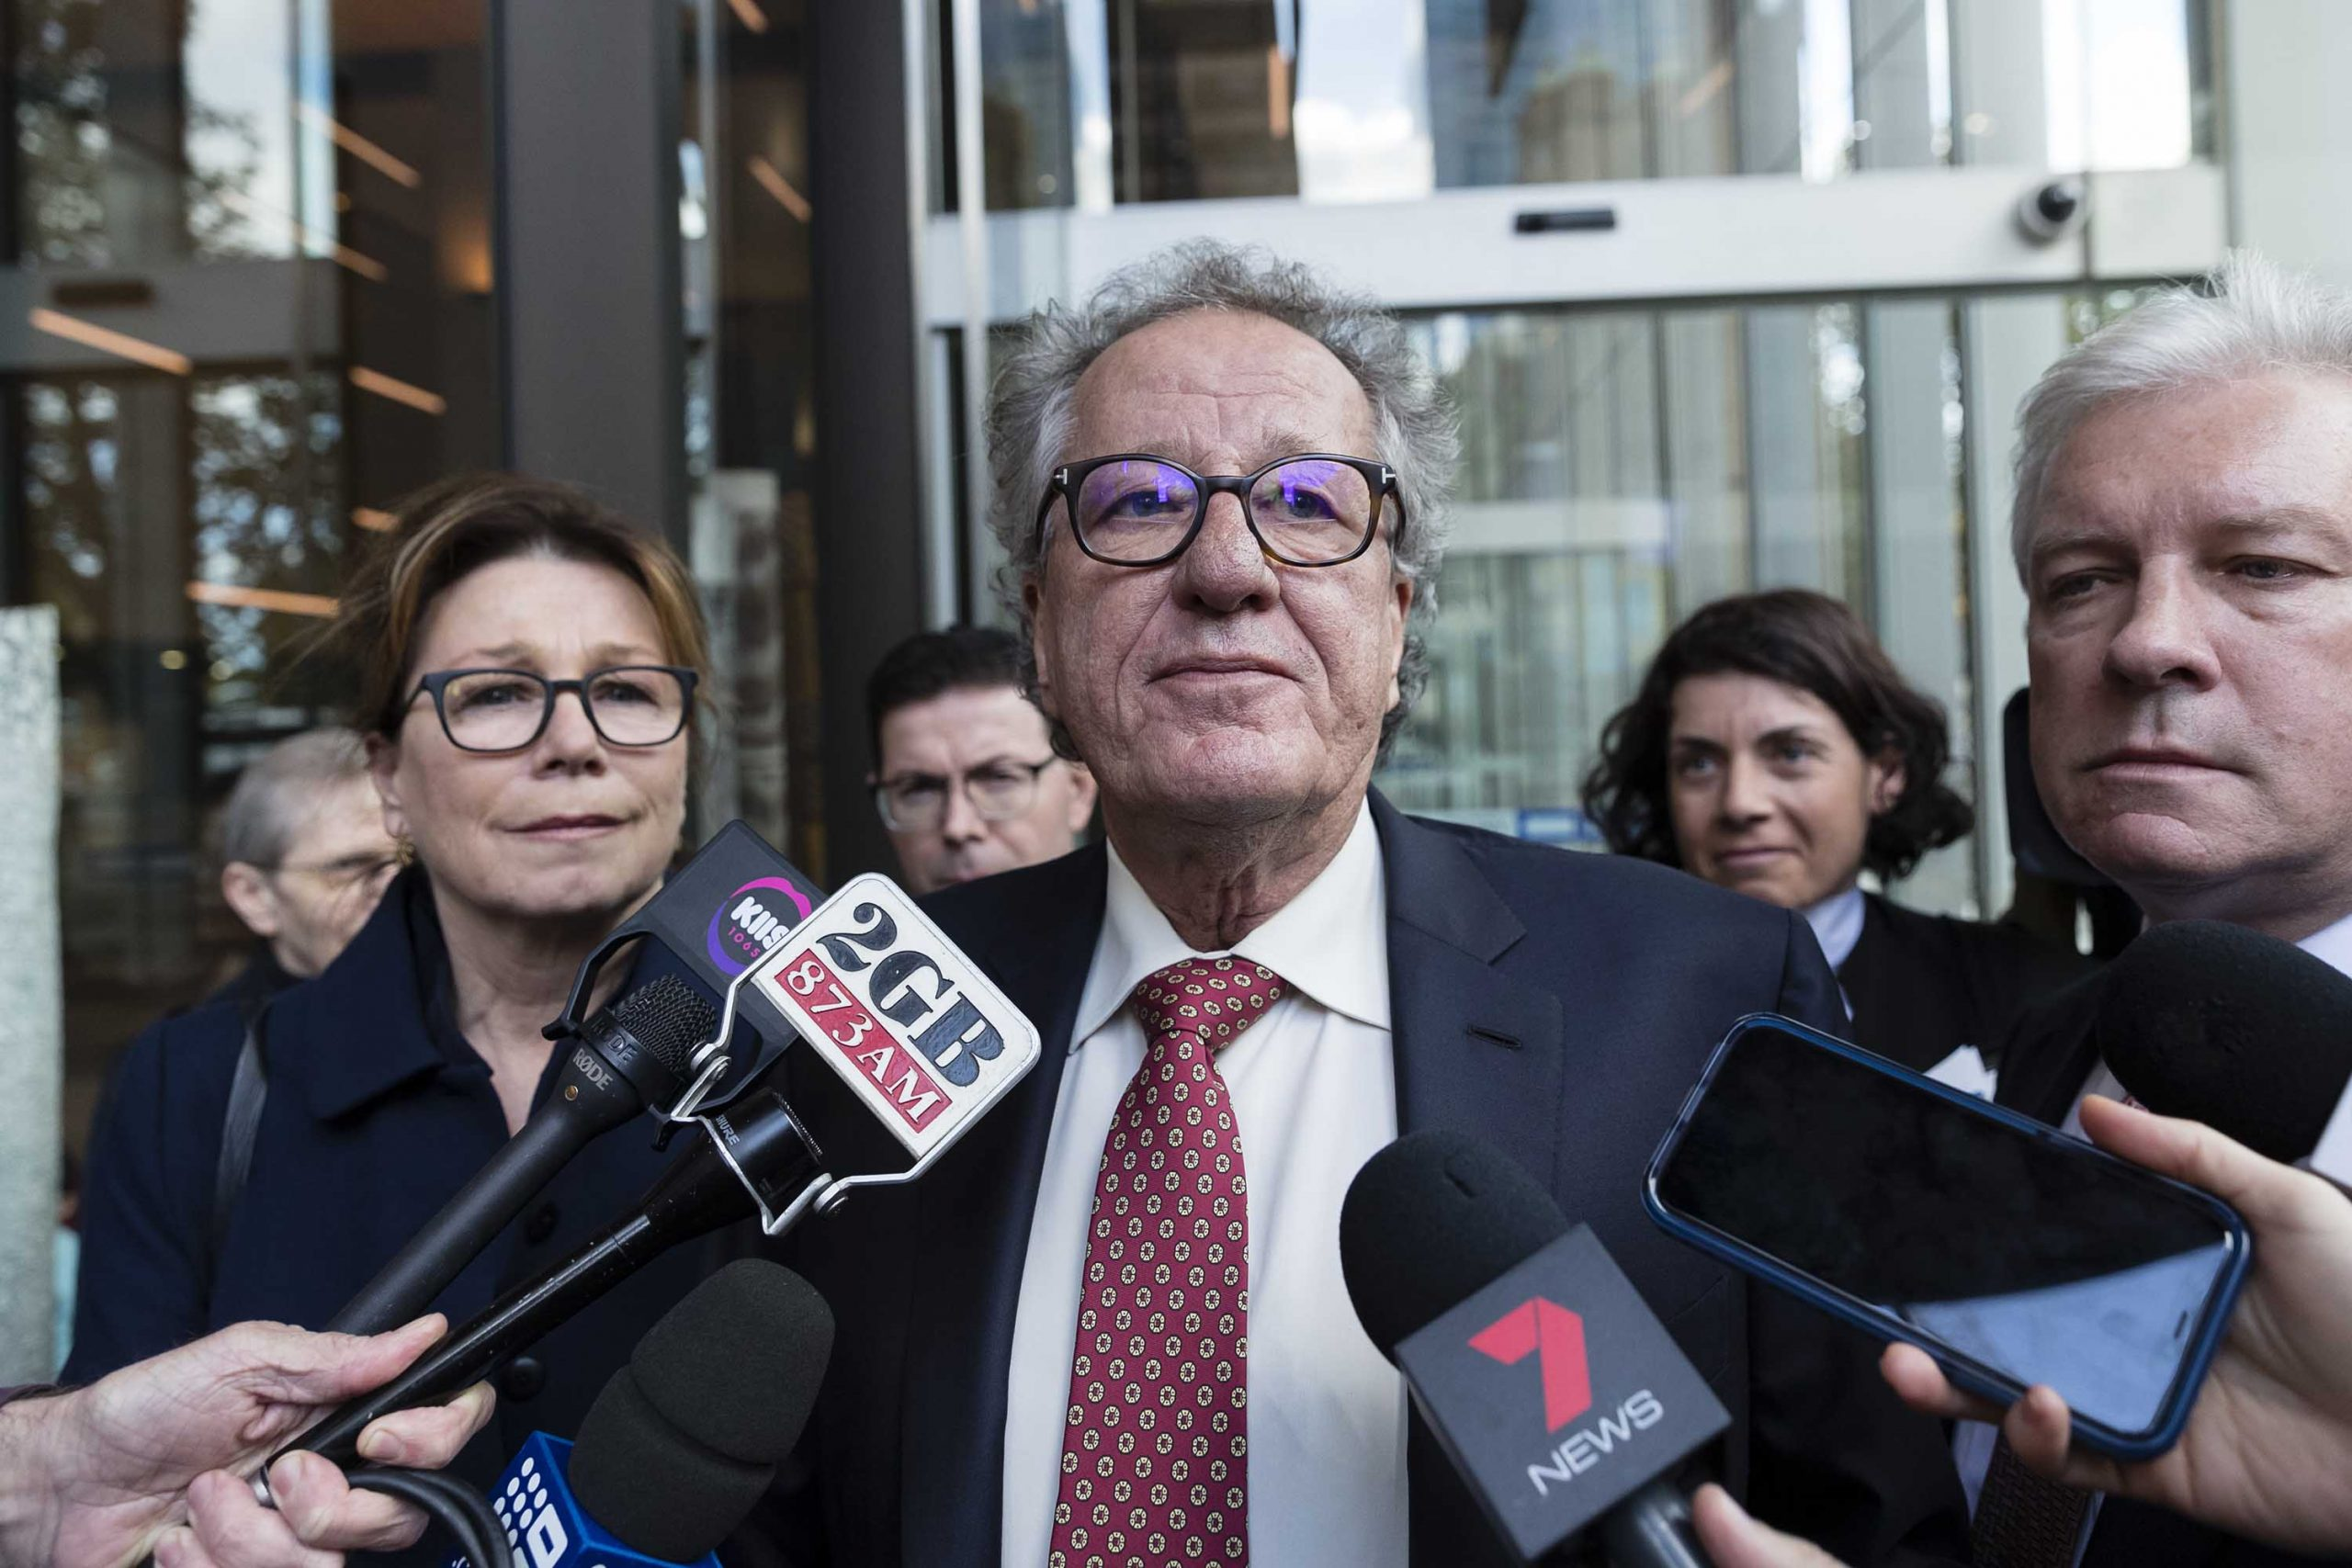 Oscar Winning Actor Geoffrey Rush Wins Defamation Case Against Scumbag Feminist News Outlets Because They Tried To Have Him Cancelled Via Trial By Media False Sexual Misconduct Allegations Made By Lying False Accuser Females